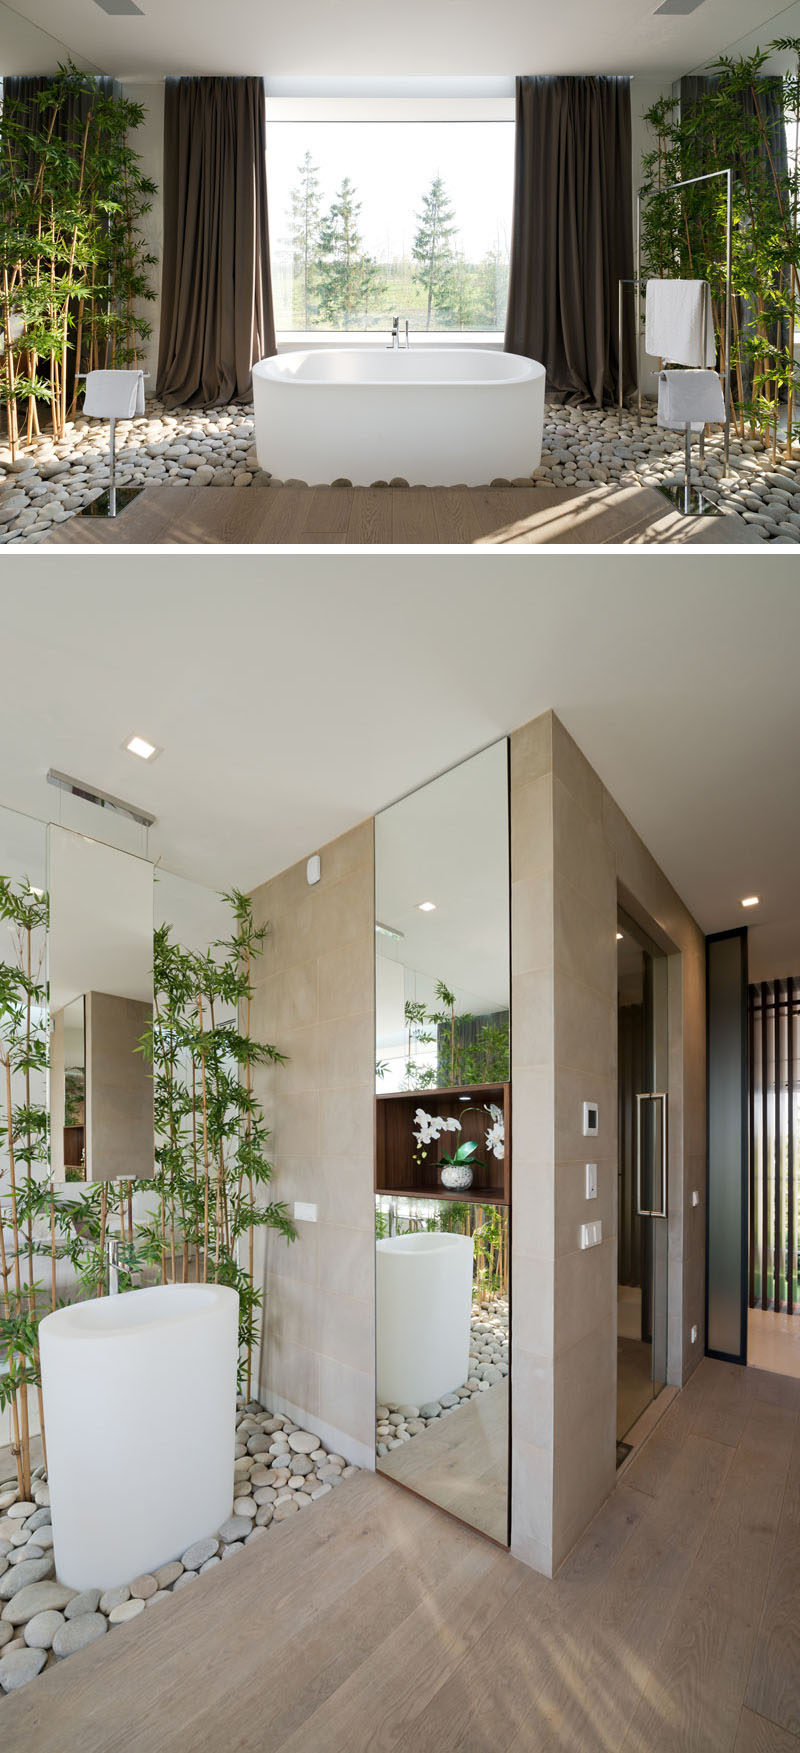 Bathroom Design Idea - Create a Luxurious Spa-Like Bathroom ... on nature kitchen, nature house designs, nature tile designs, nature fence designs, nature doors, nature wall designs, nature jewelry designs, natural stone shower designs, nature decor, nature inspired design, nature office design, nature room, nature baths, nature art, nature bedroom, nature architecture, nature wood burning designs, nature fabrics, nature paint designs,